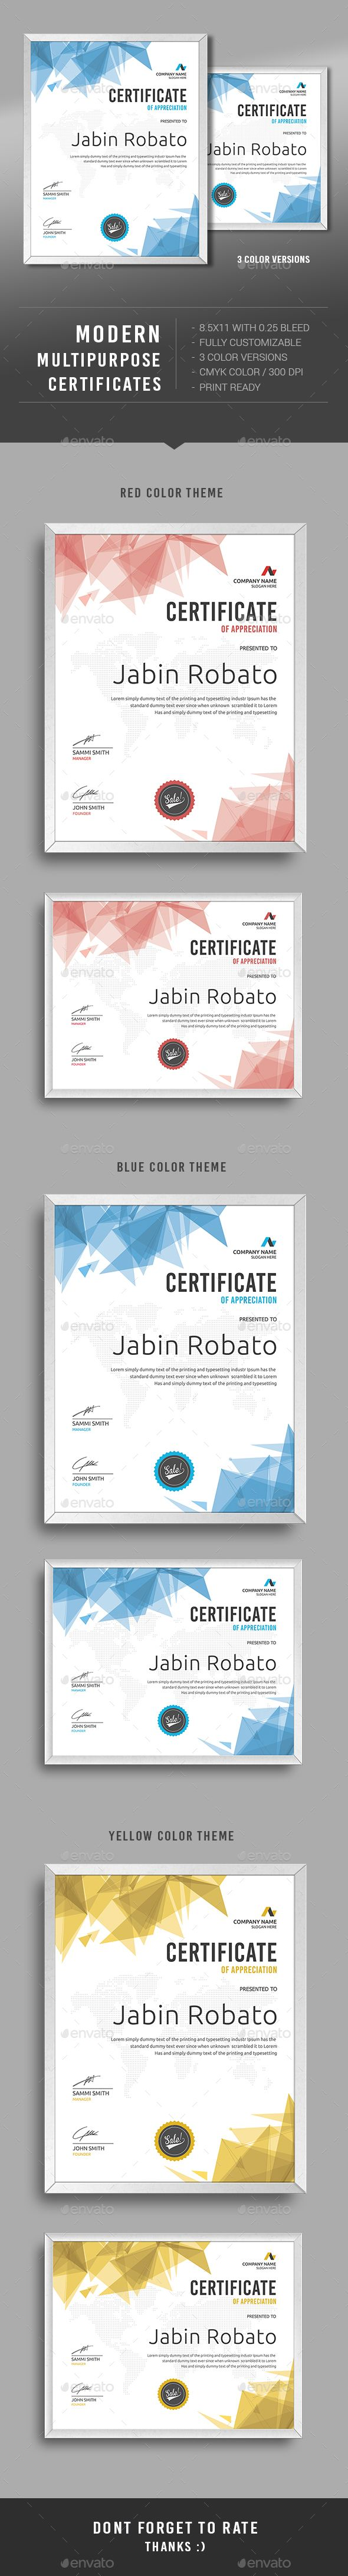 #Certificate - #Certificates #Stationery Download here: https://graphicriver.net/item/certificate/12869634?ref=alena994